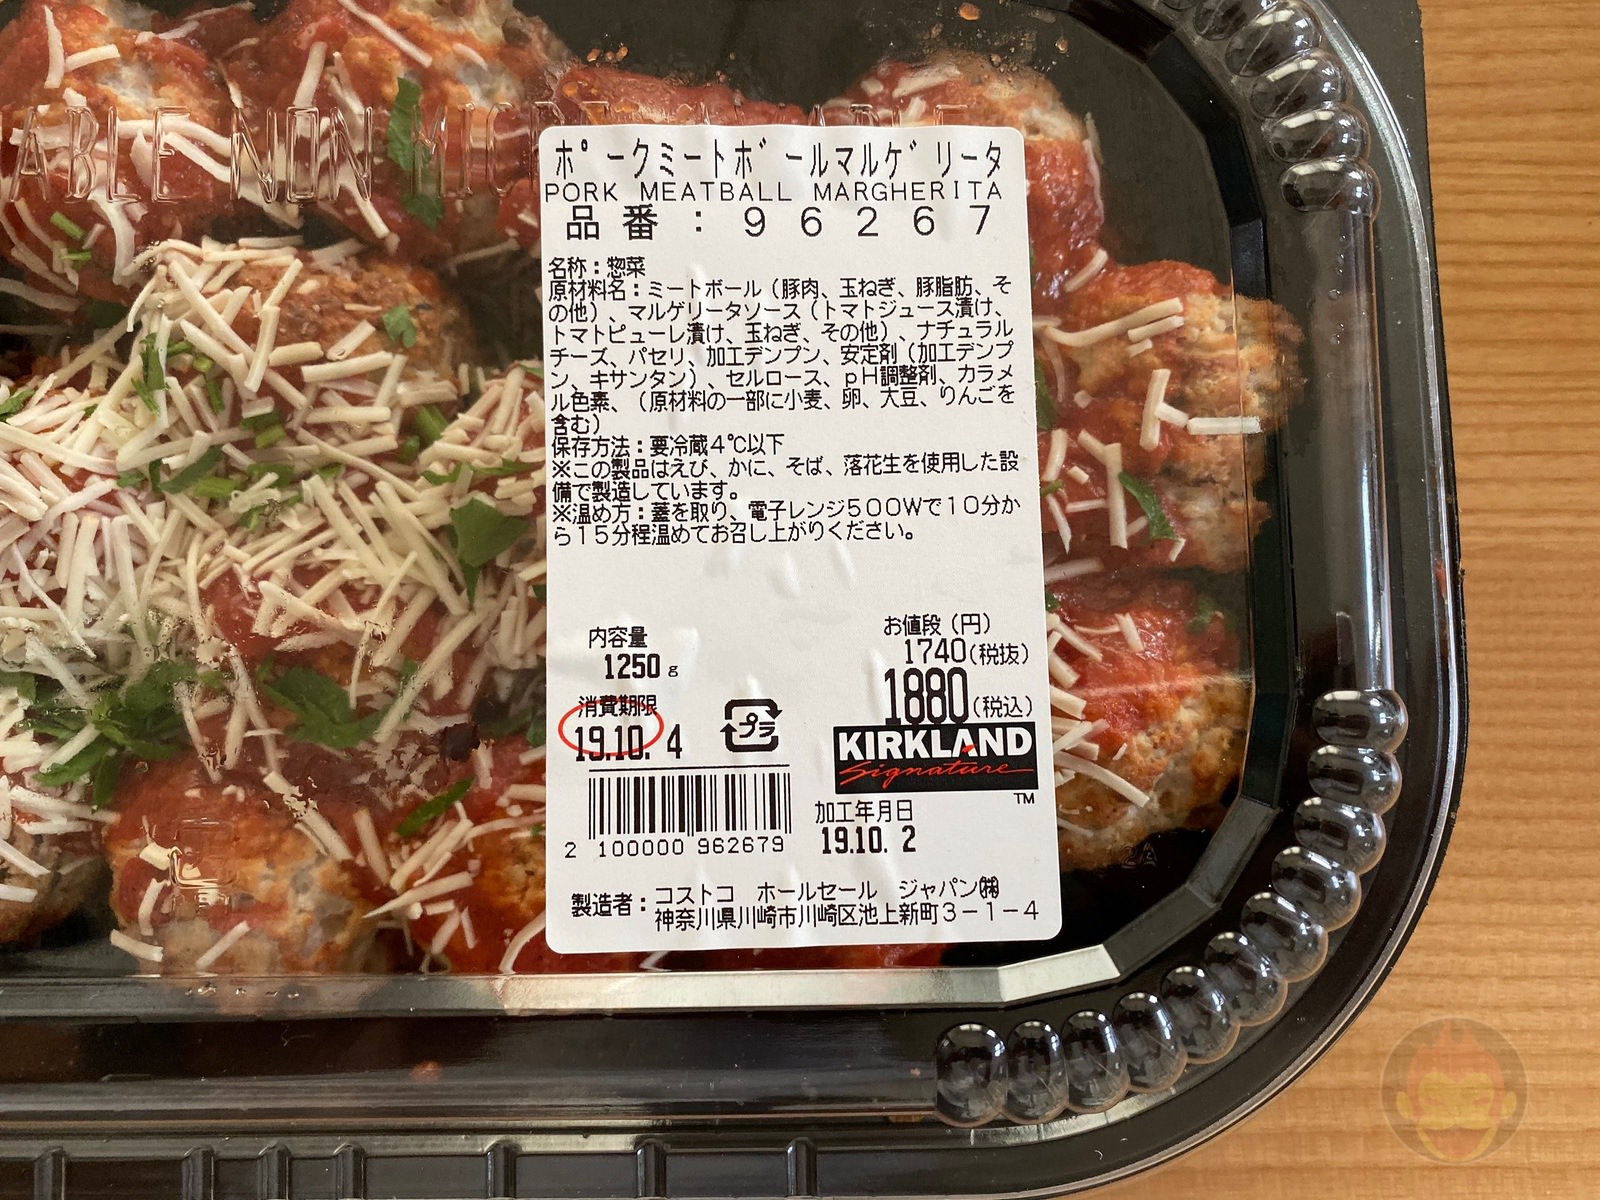 Costco Meat Ball 16